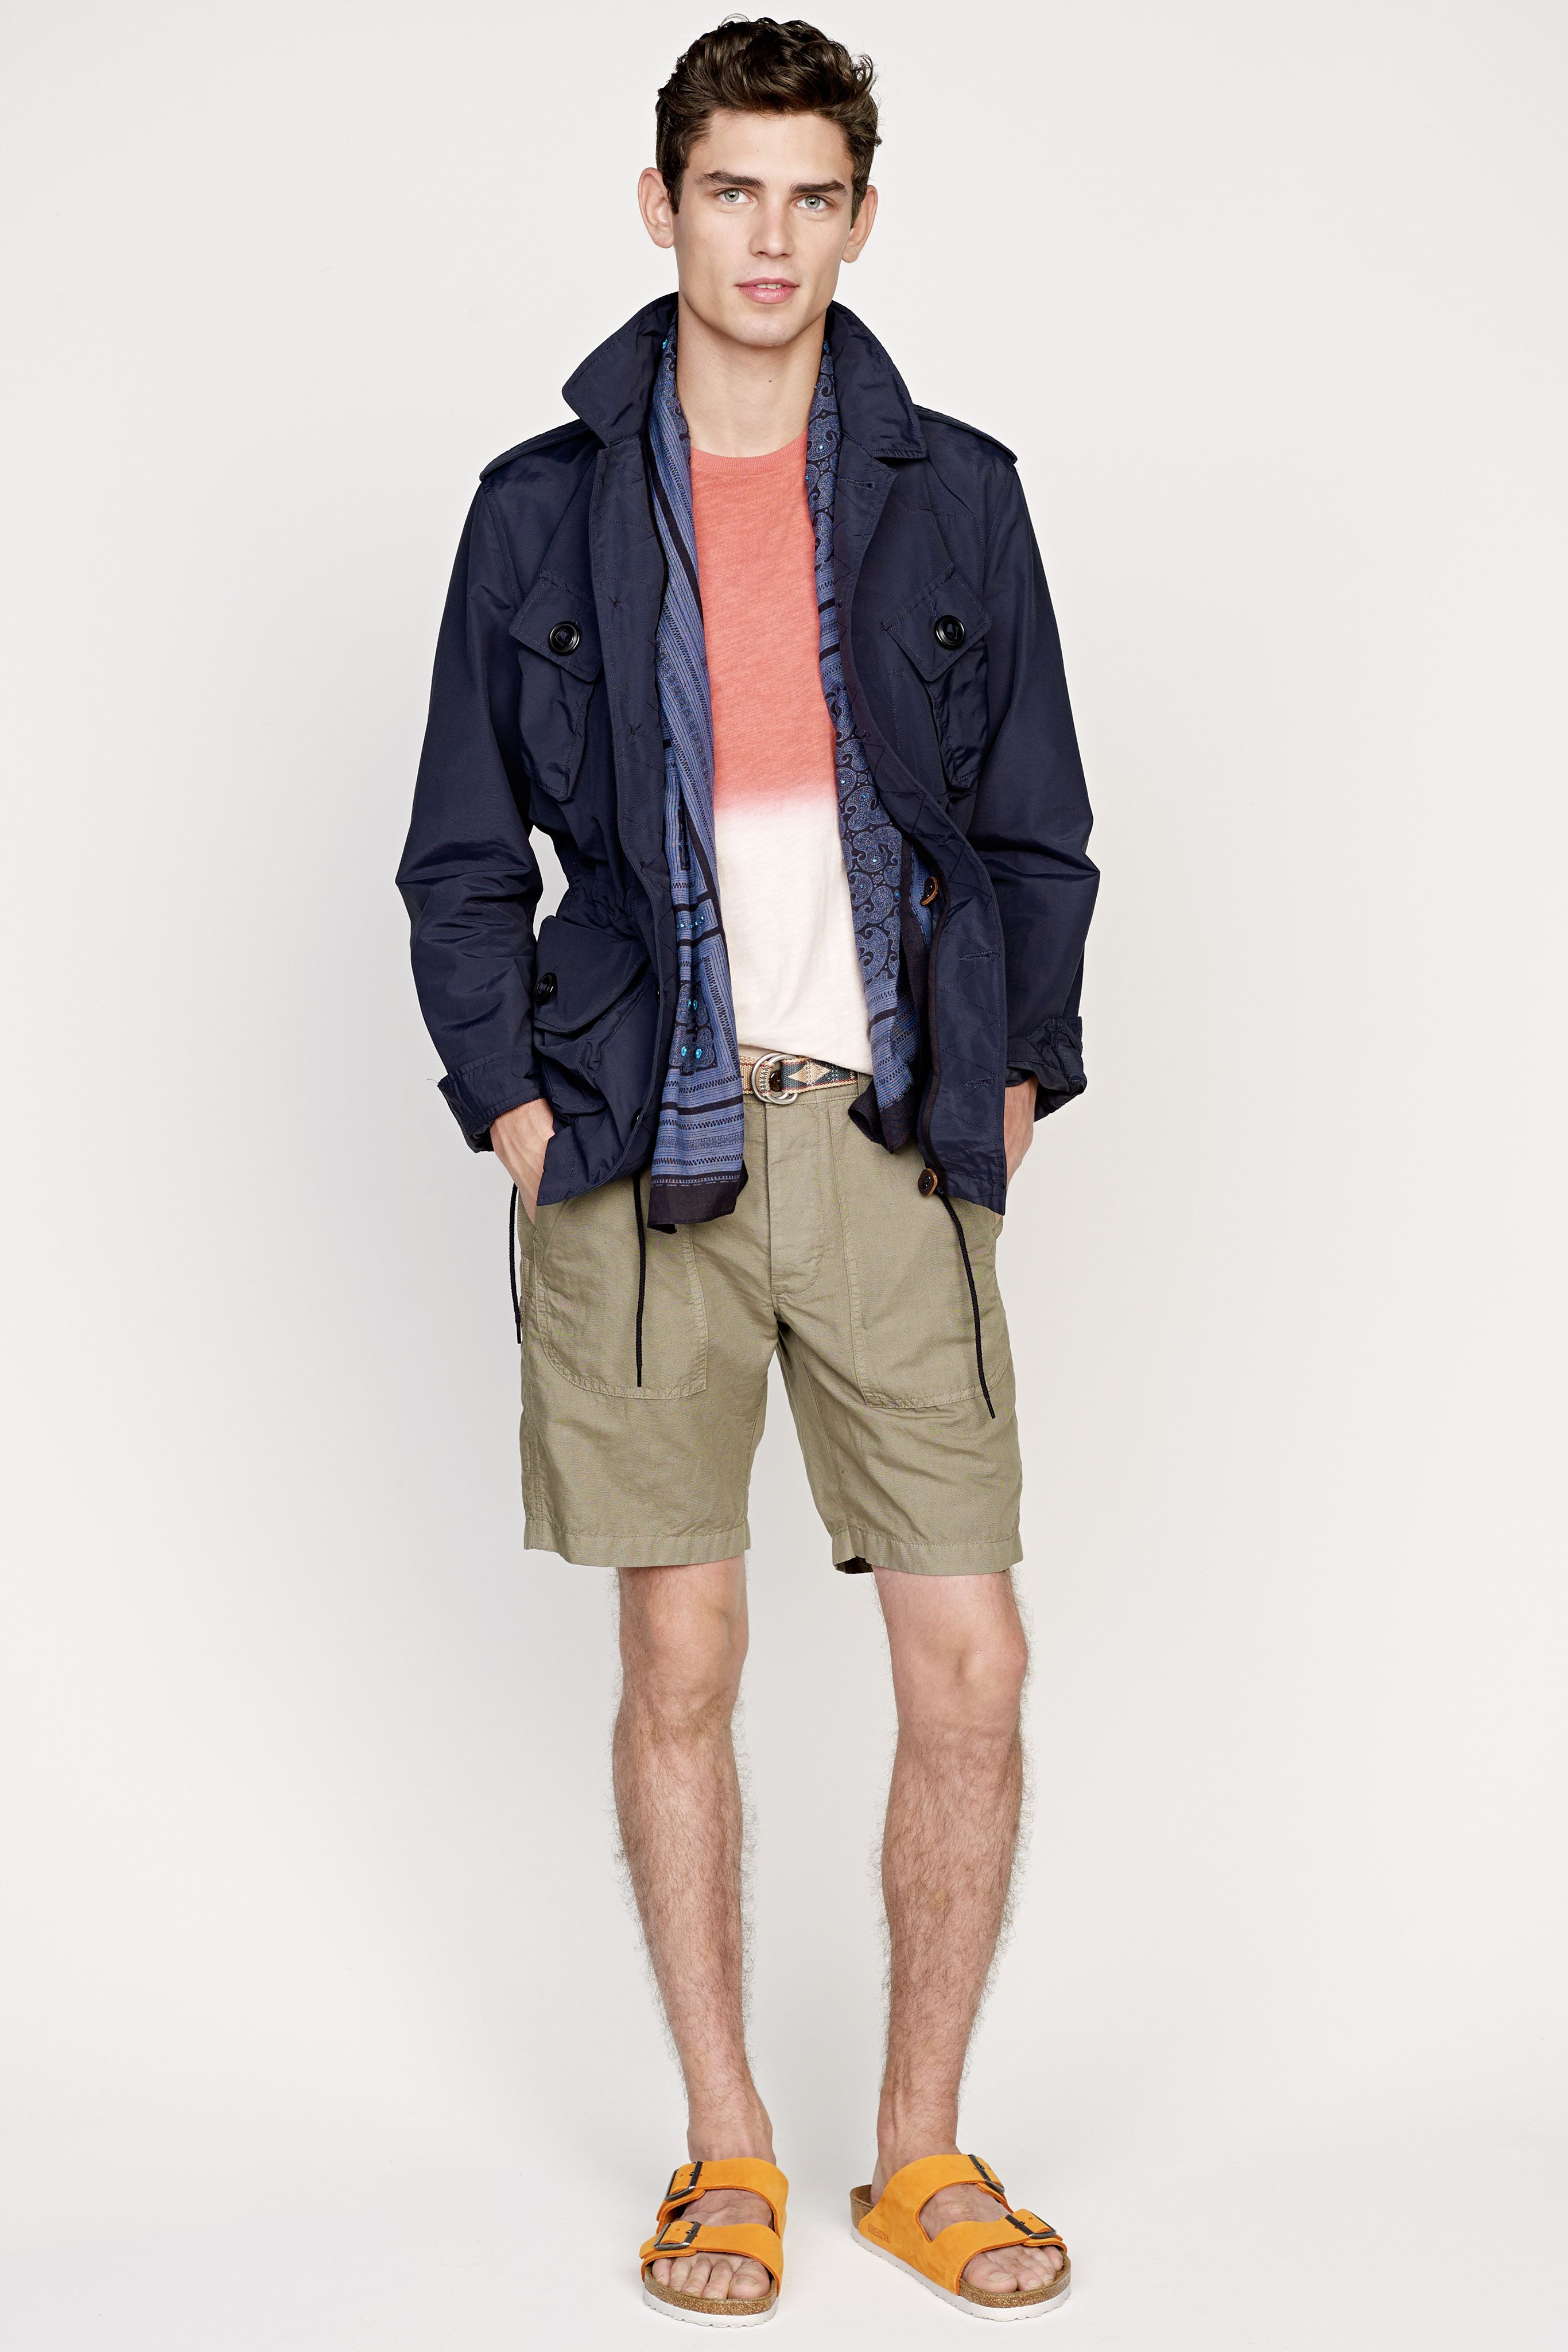 J crew men 39 s spring summer 2015 collection for the for J crew mens looks